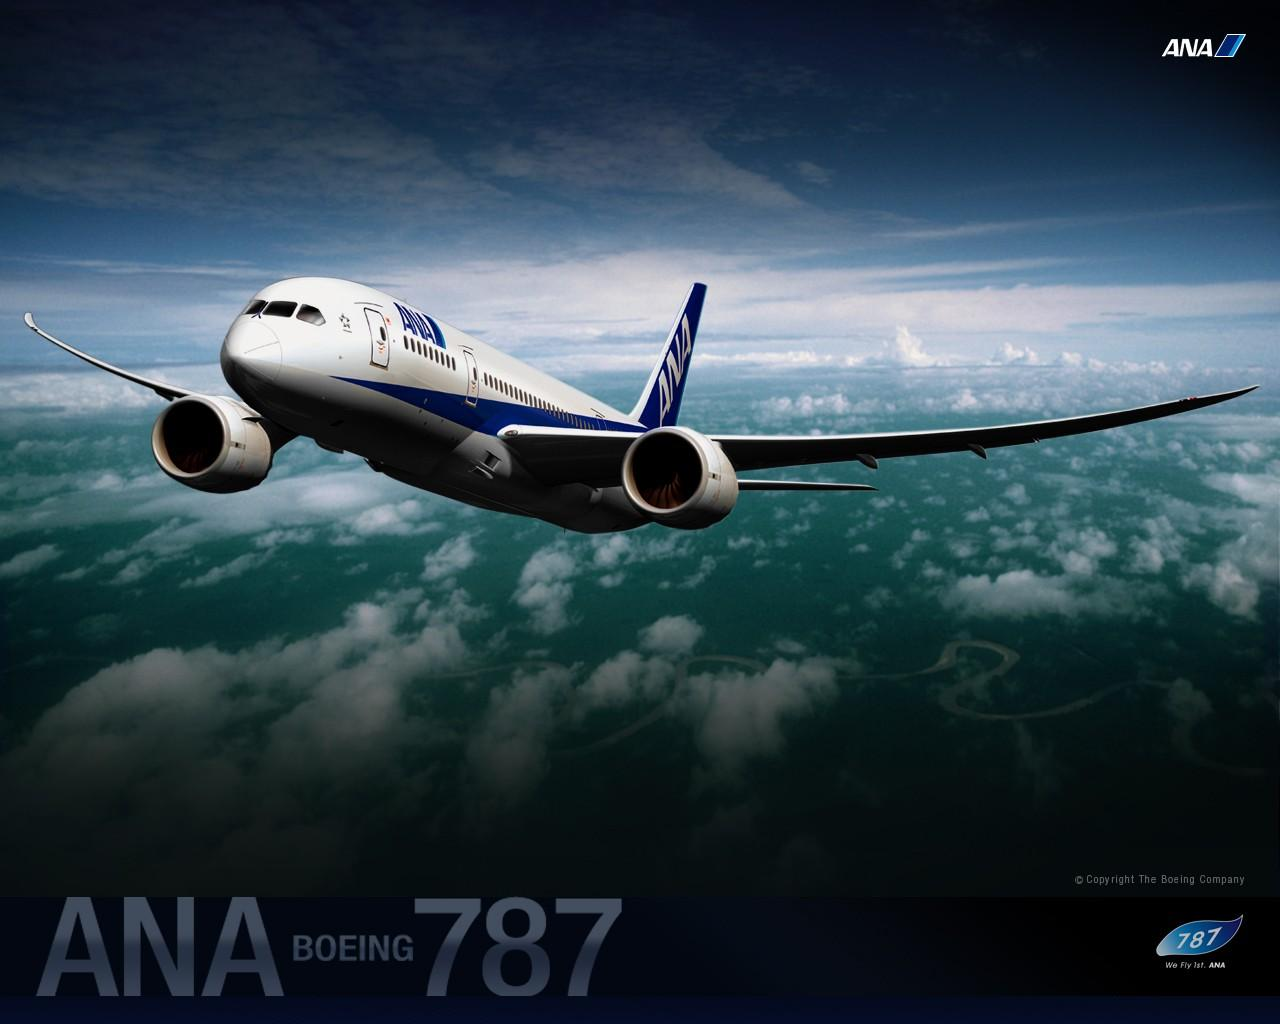 Boeing 787 Interior Wallpaper Wallpapers For Fun